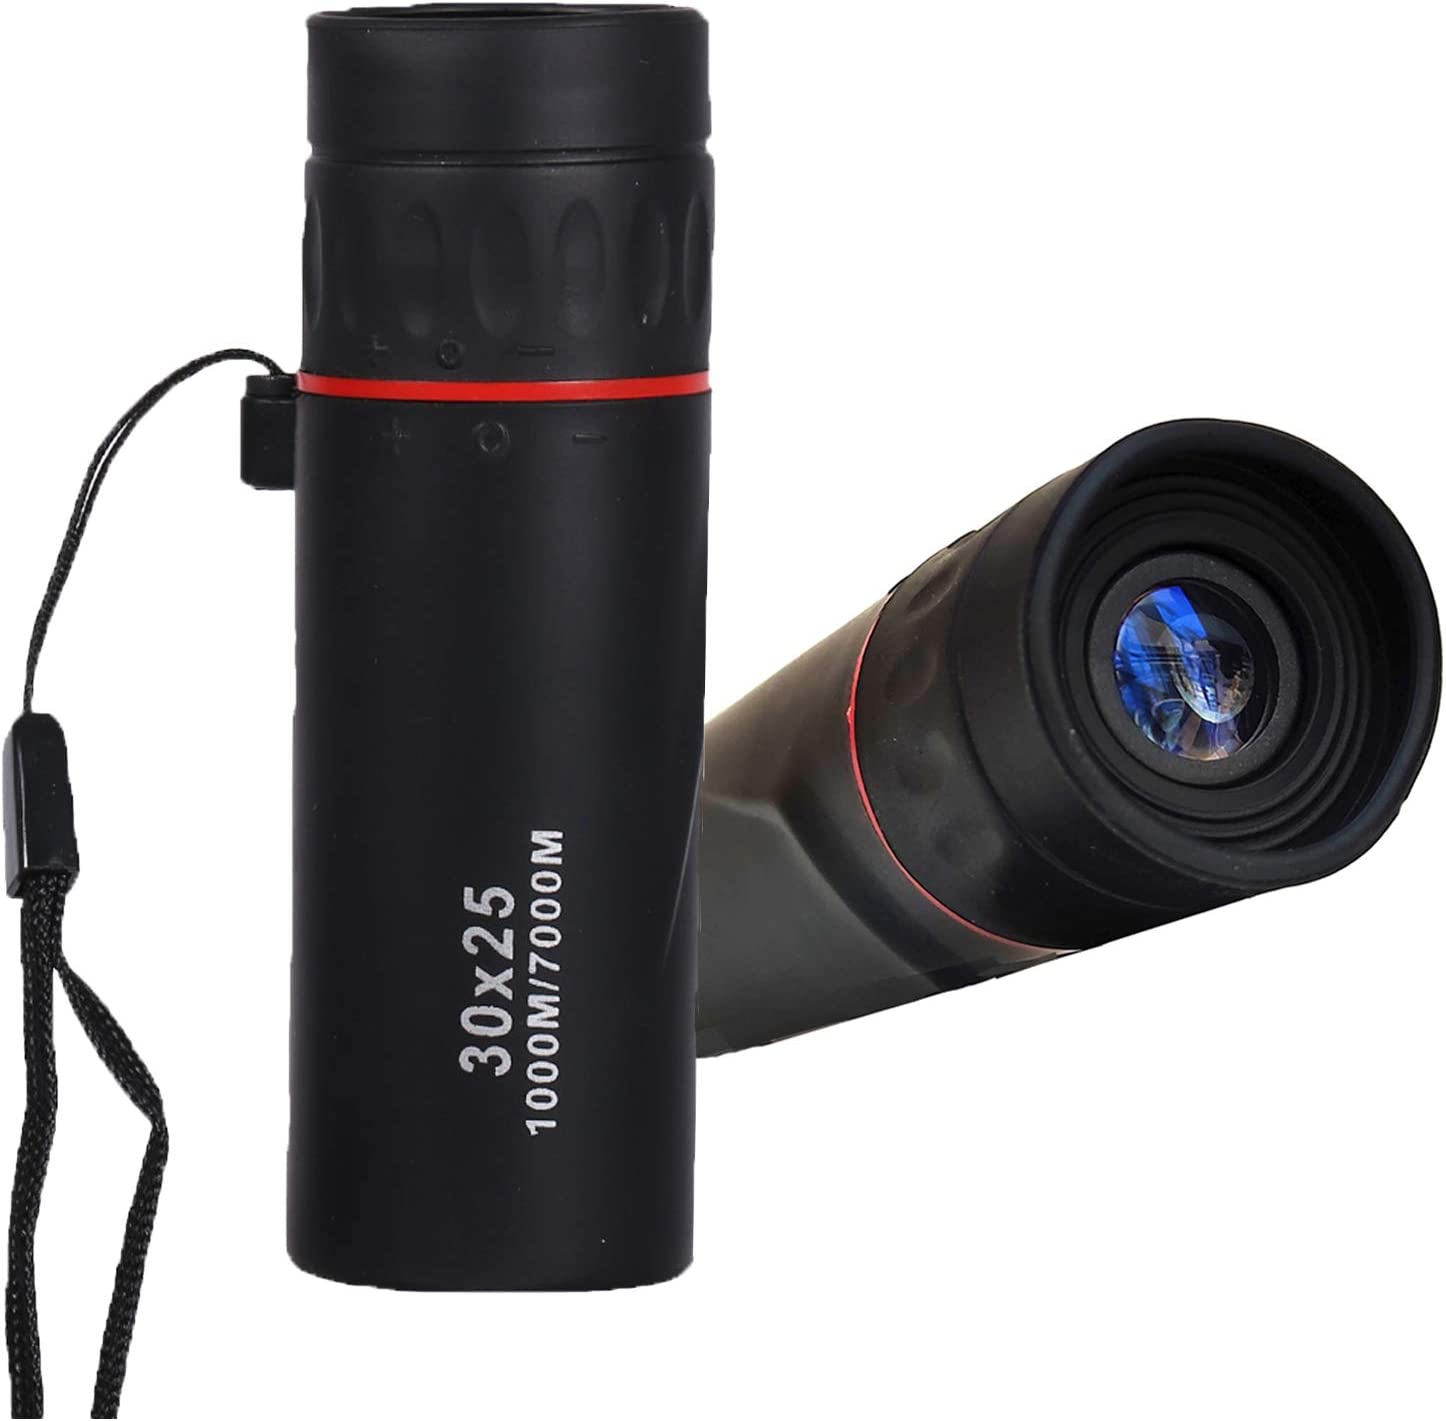 Limited time trial price V BESTLIFE Monoculars Telescope 30 x Black Opt 7X Waterproof 25 100% quality warranty!